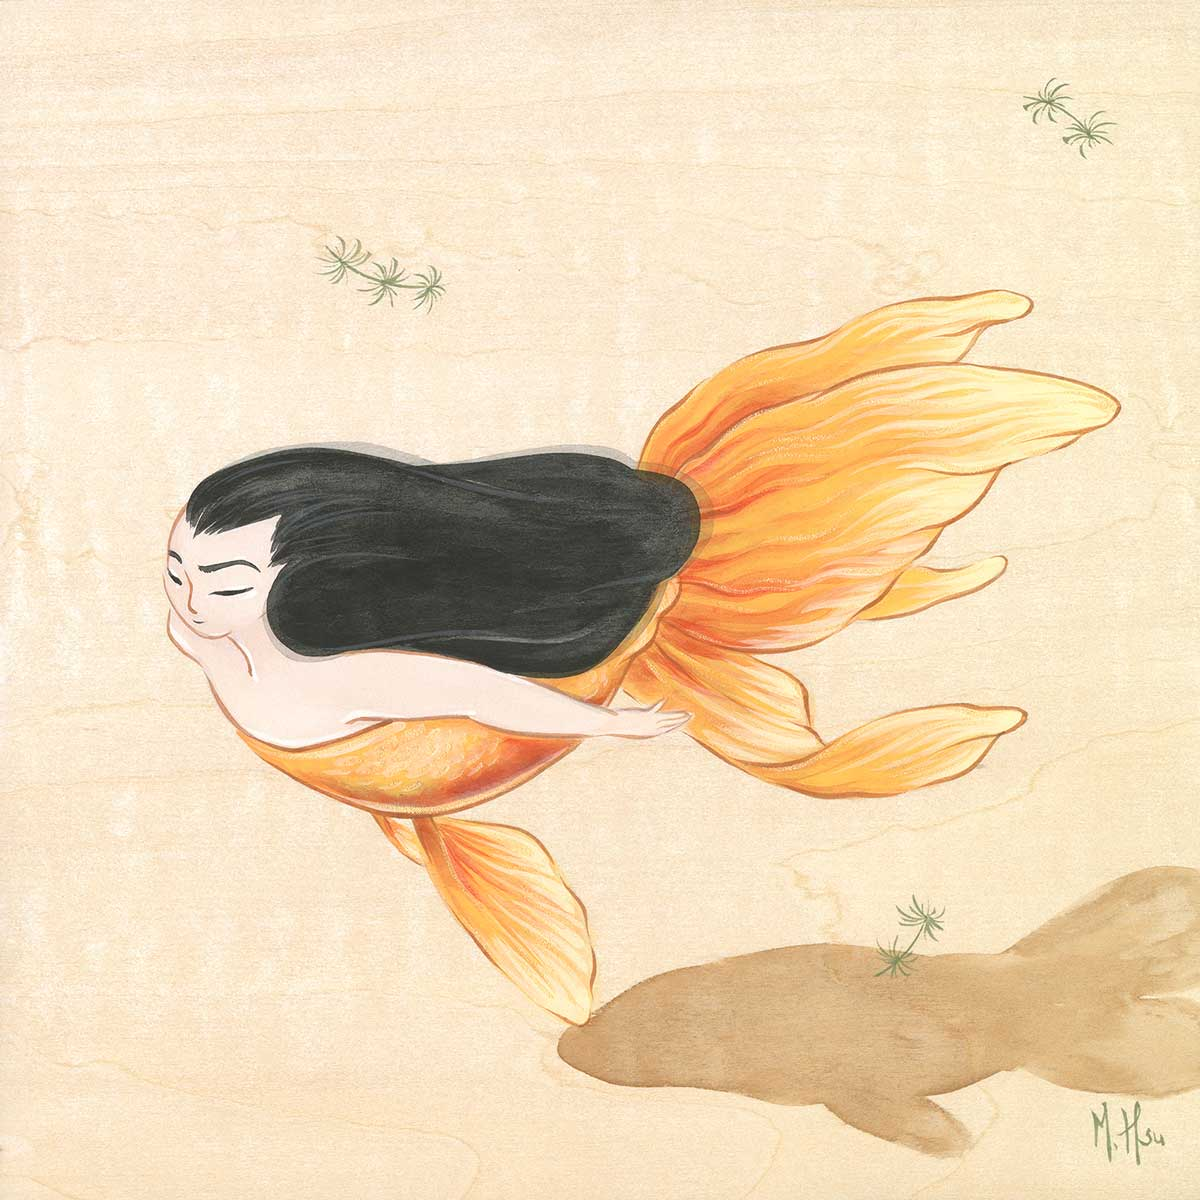 Ningyo 人魚: Exquisite Tales of the Human Fish